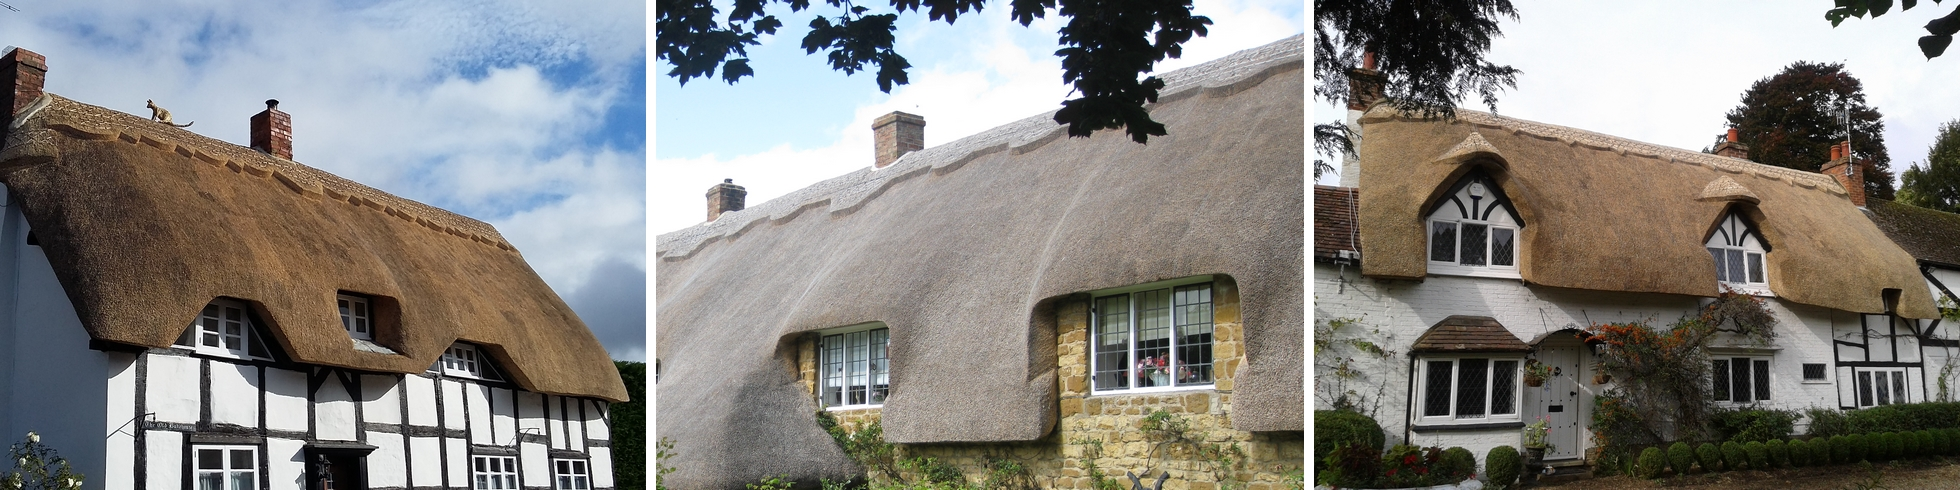 Examples of Jem Raison's thatch craft in The Cotswolds